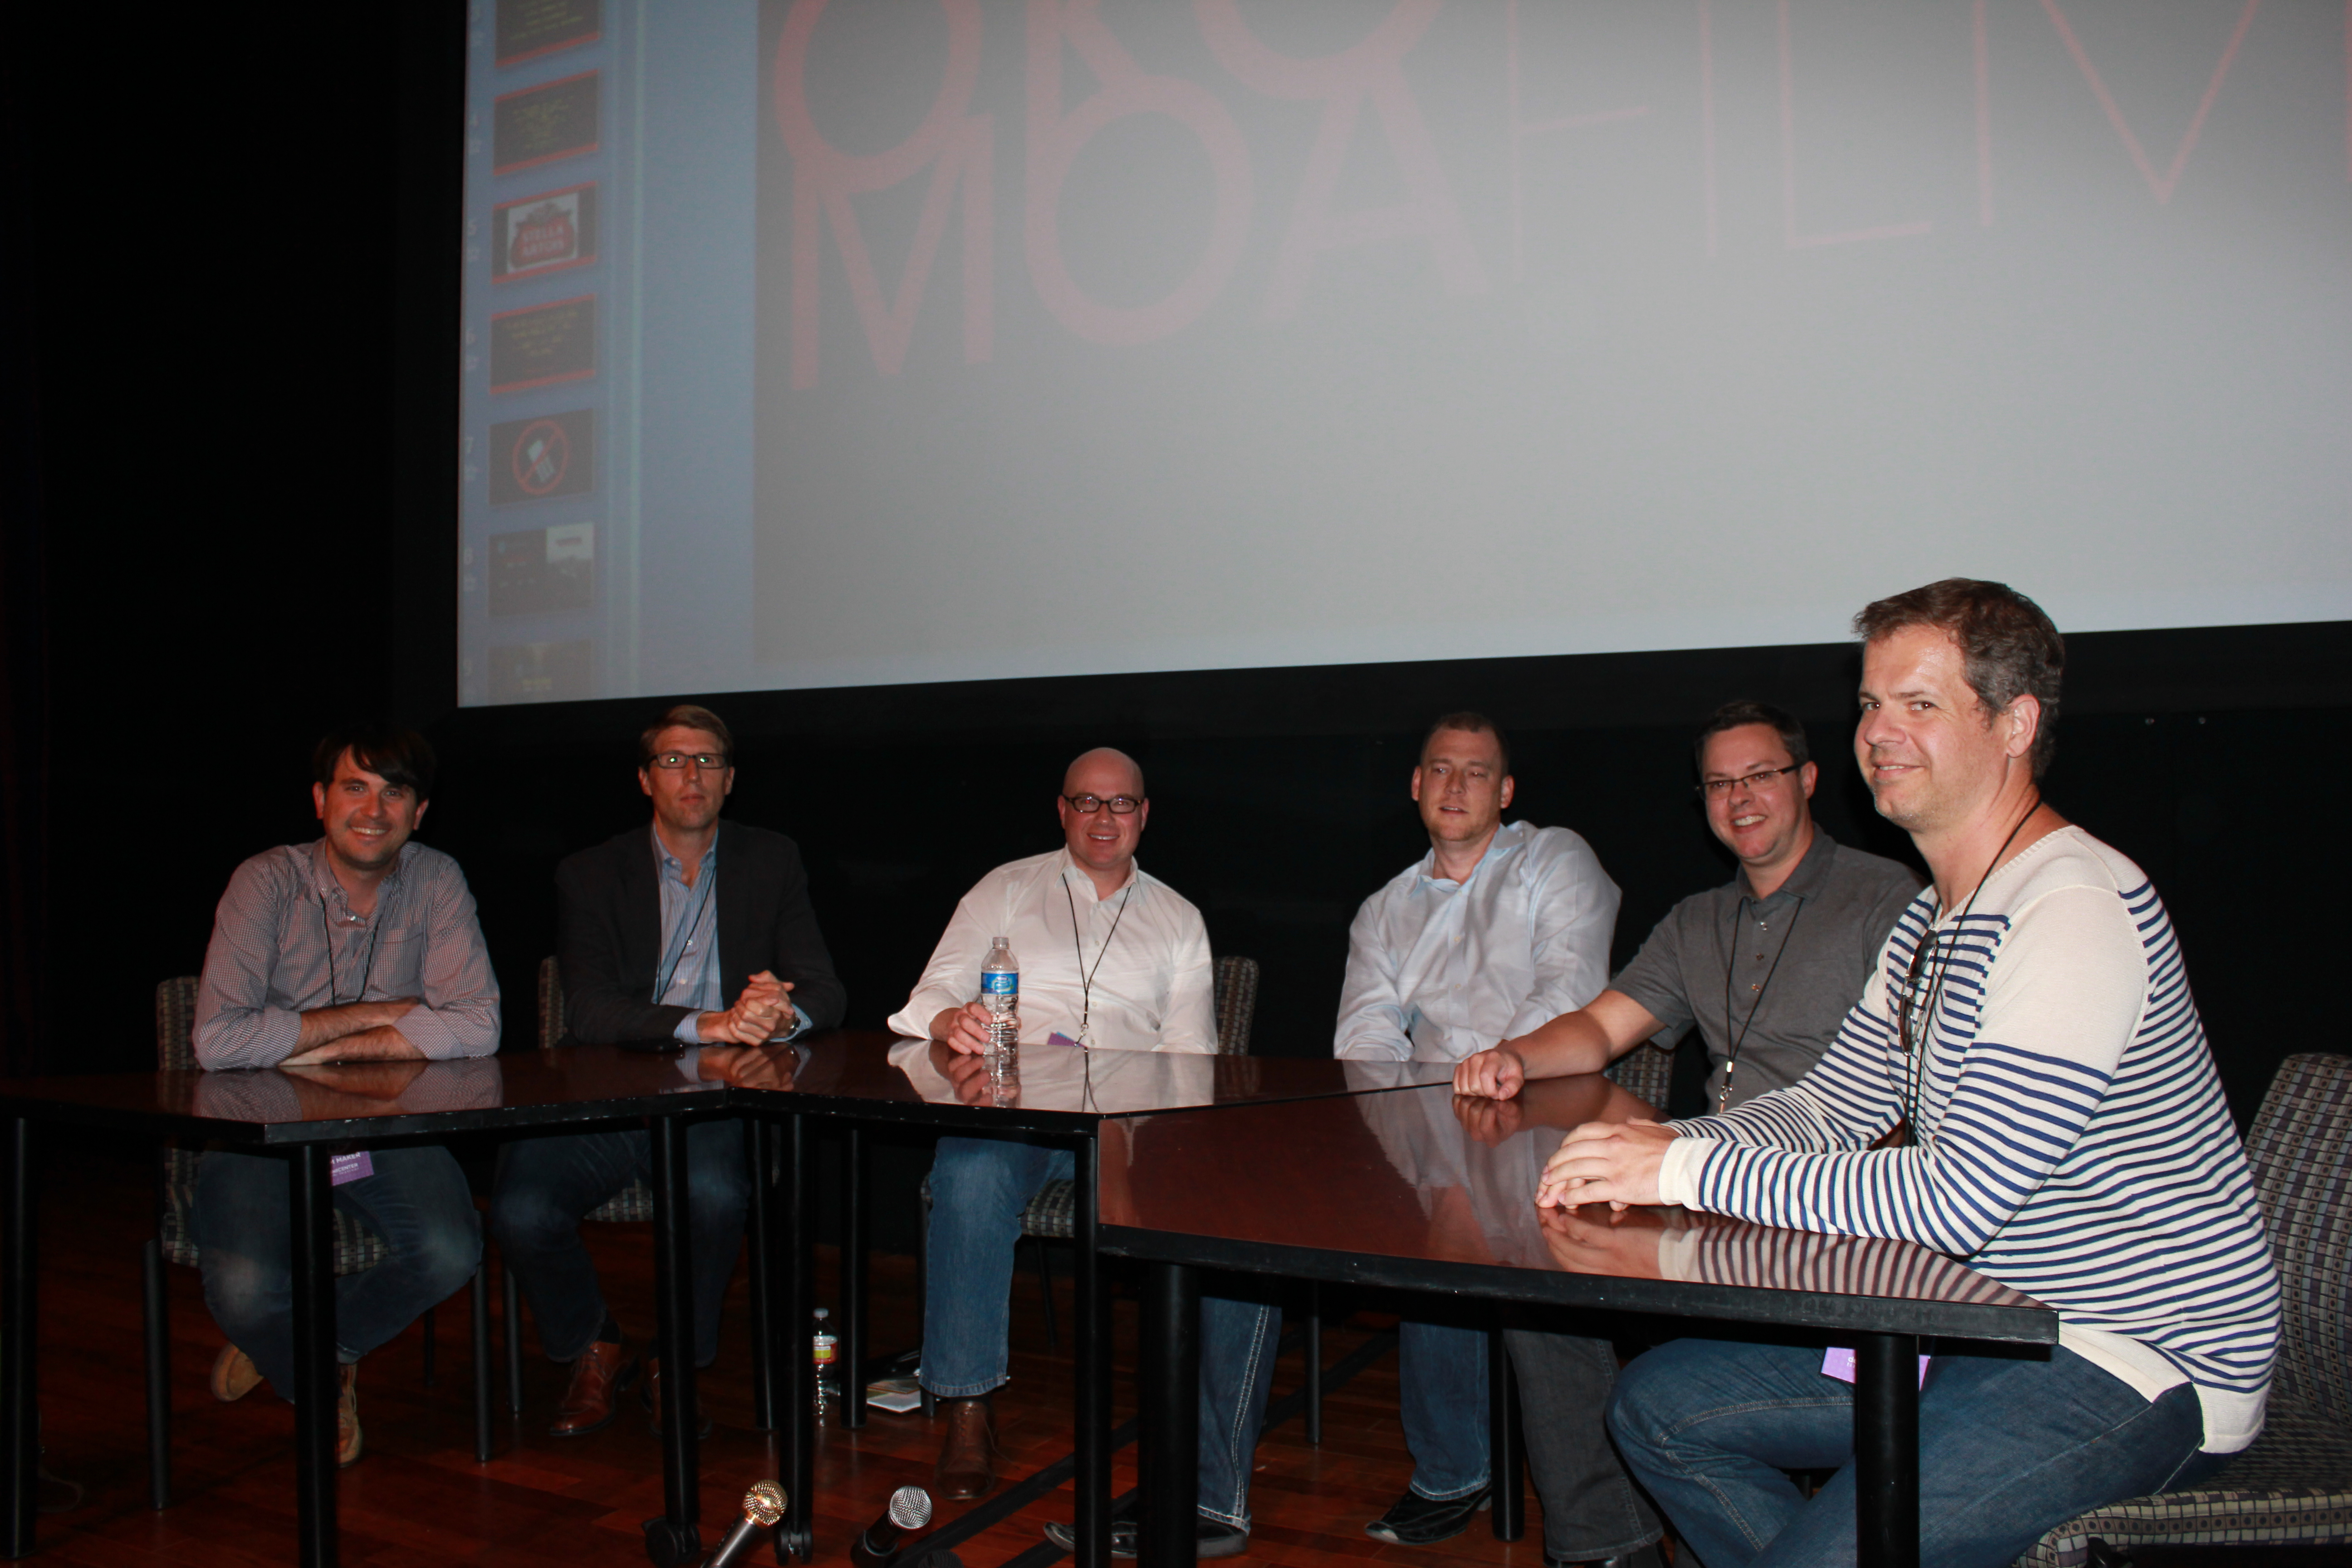 Panel Guests: Malcolm Pullinger, Jason Cleveland, Brian Cleveland, Jason Connell, Alex Barder, Chad Reinke.